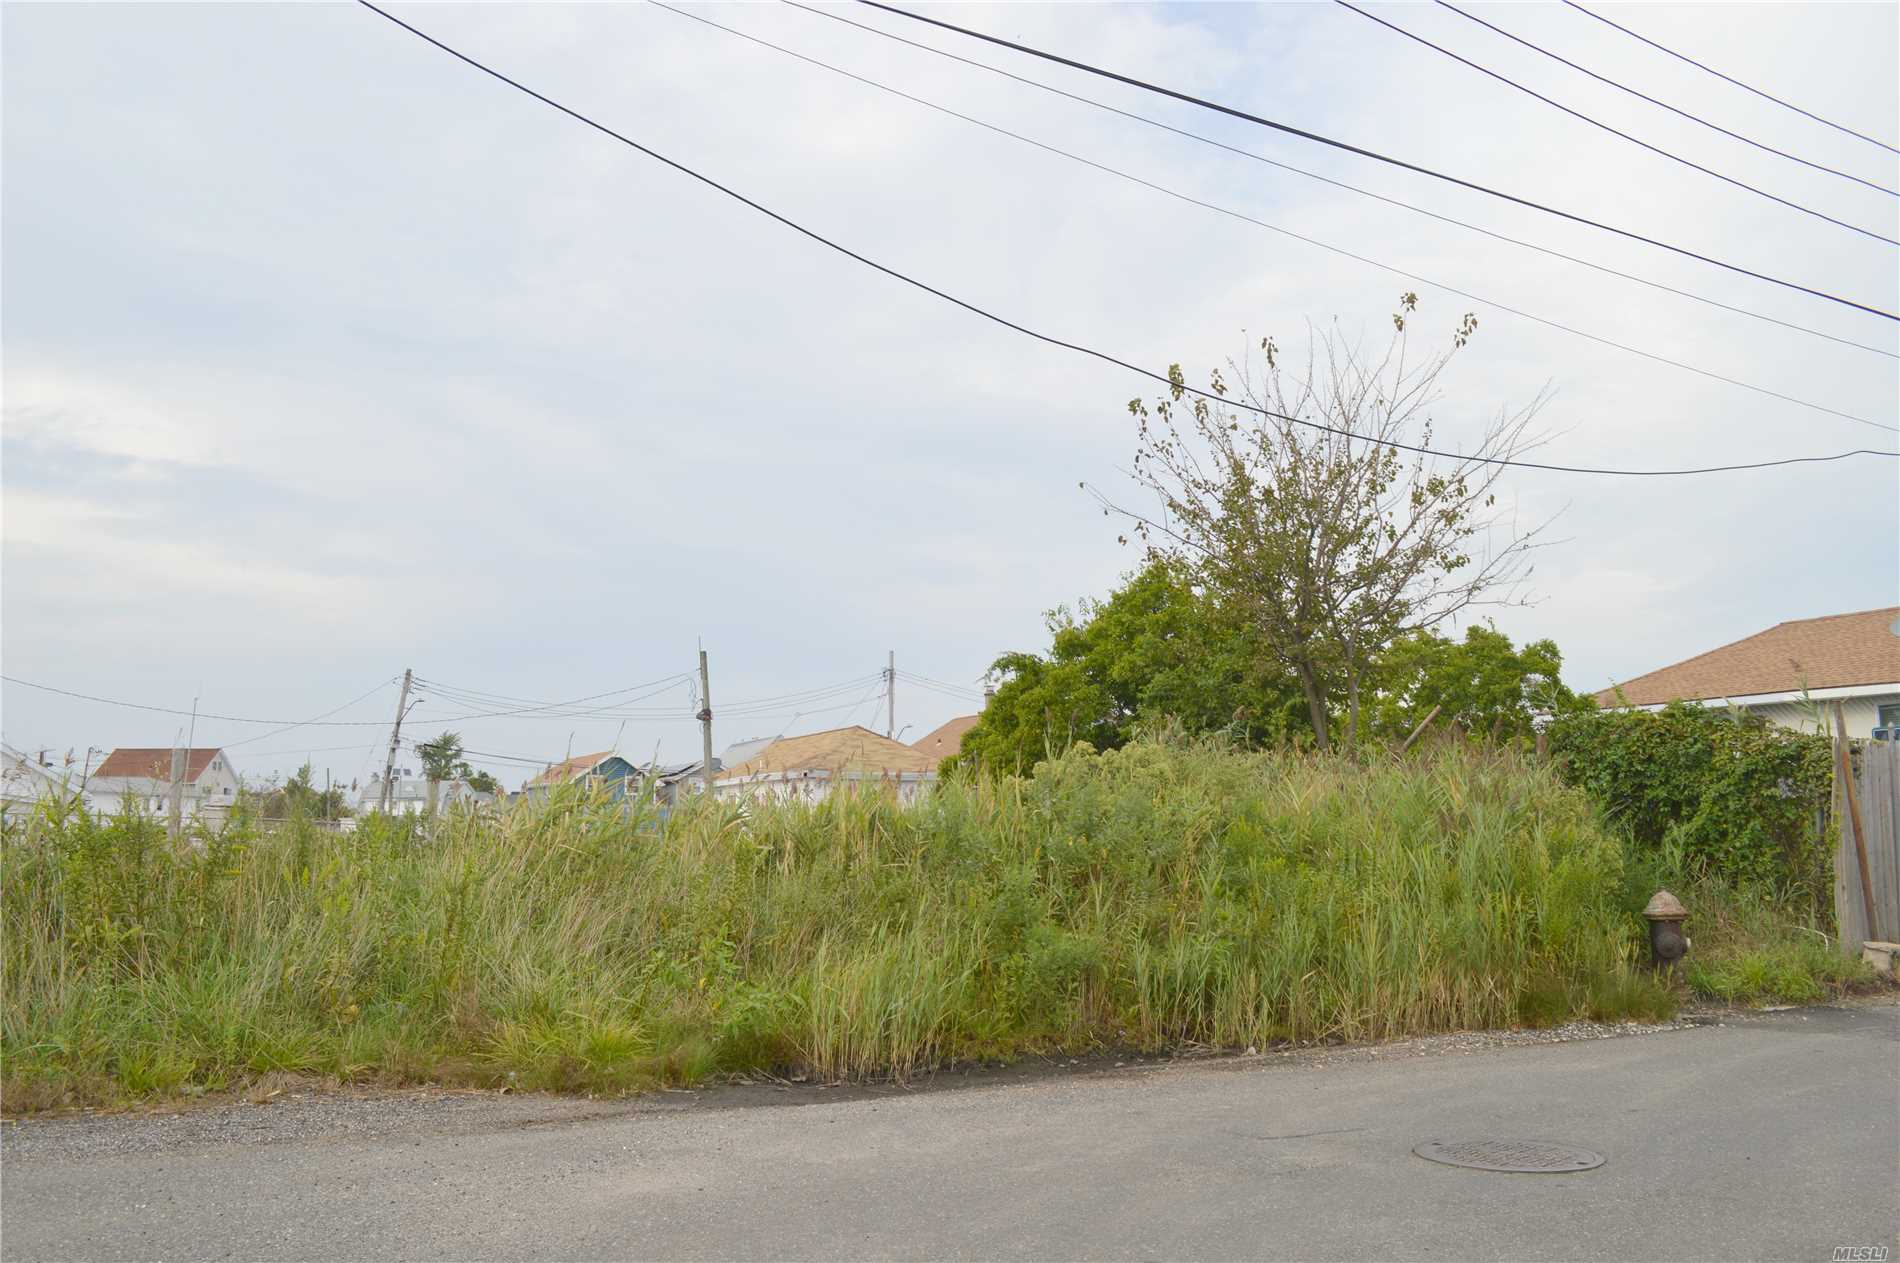 Empty Lots For Sale In Hamilton Beach. R3A Zoning. 2 Properties Sold Together As A Package. Block 14231 Lots 1105 And 1106 Both Side By Side And Total A 40X70 Lot.